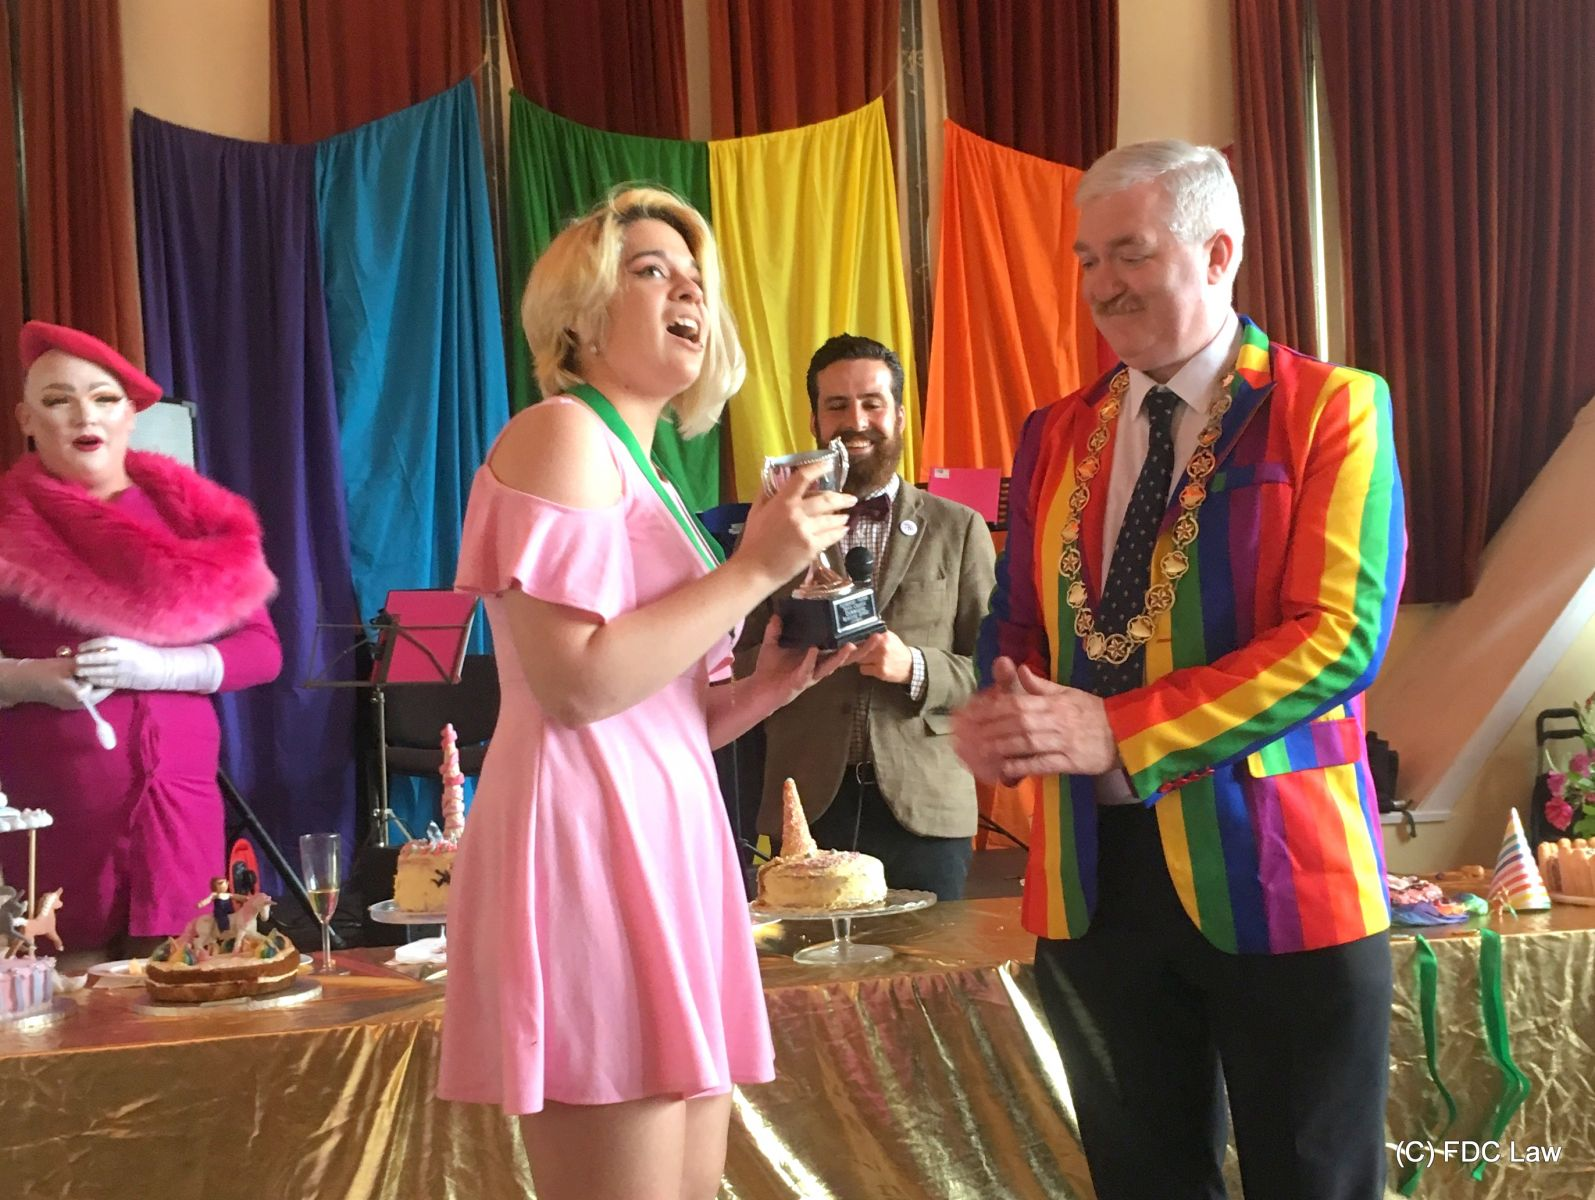 girl in pink dress accepting prize cup from a man wearing a rainbow jacket